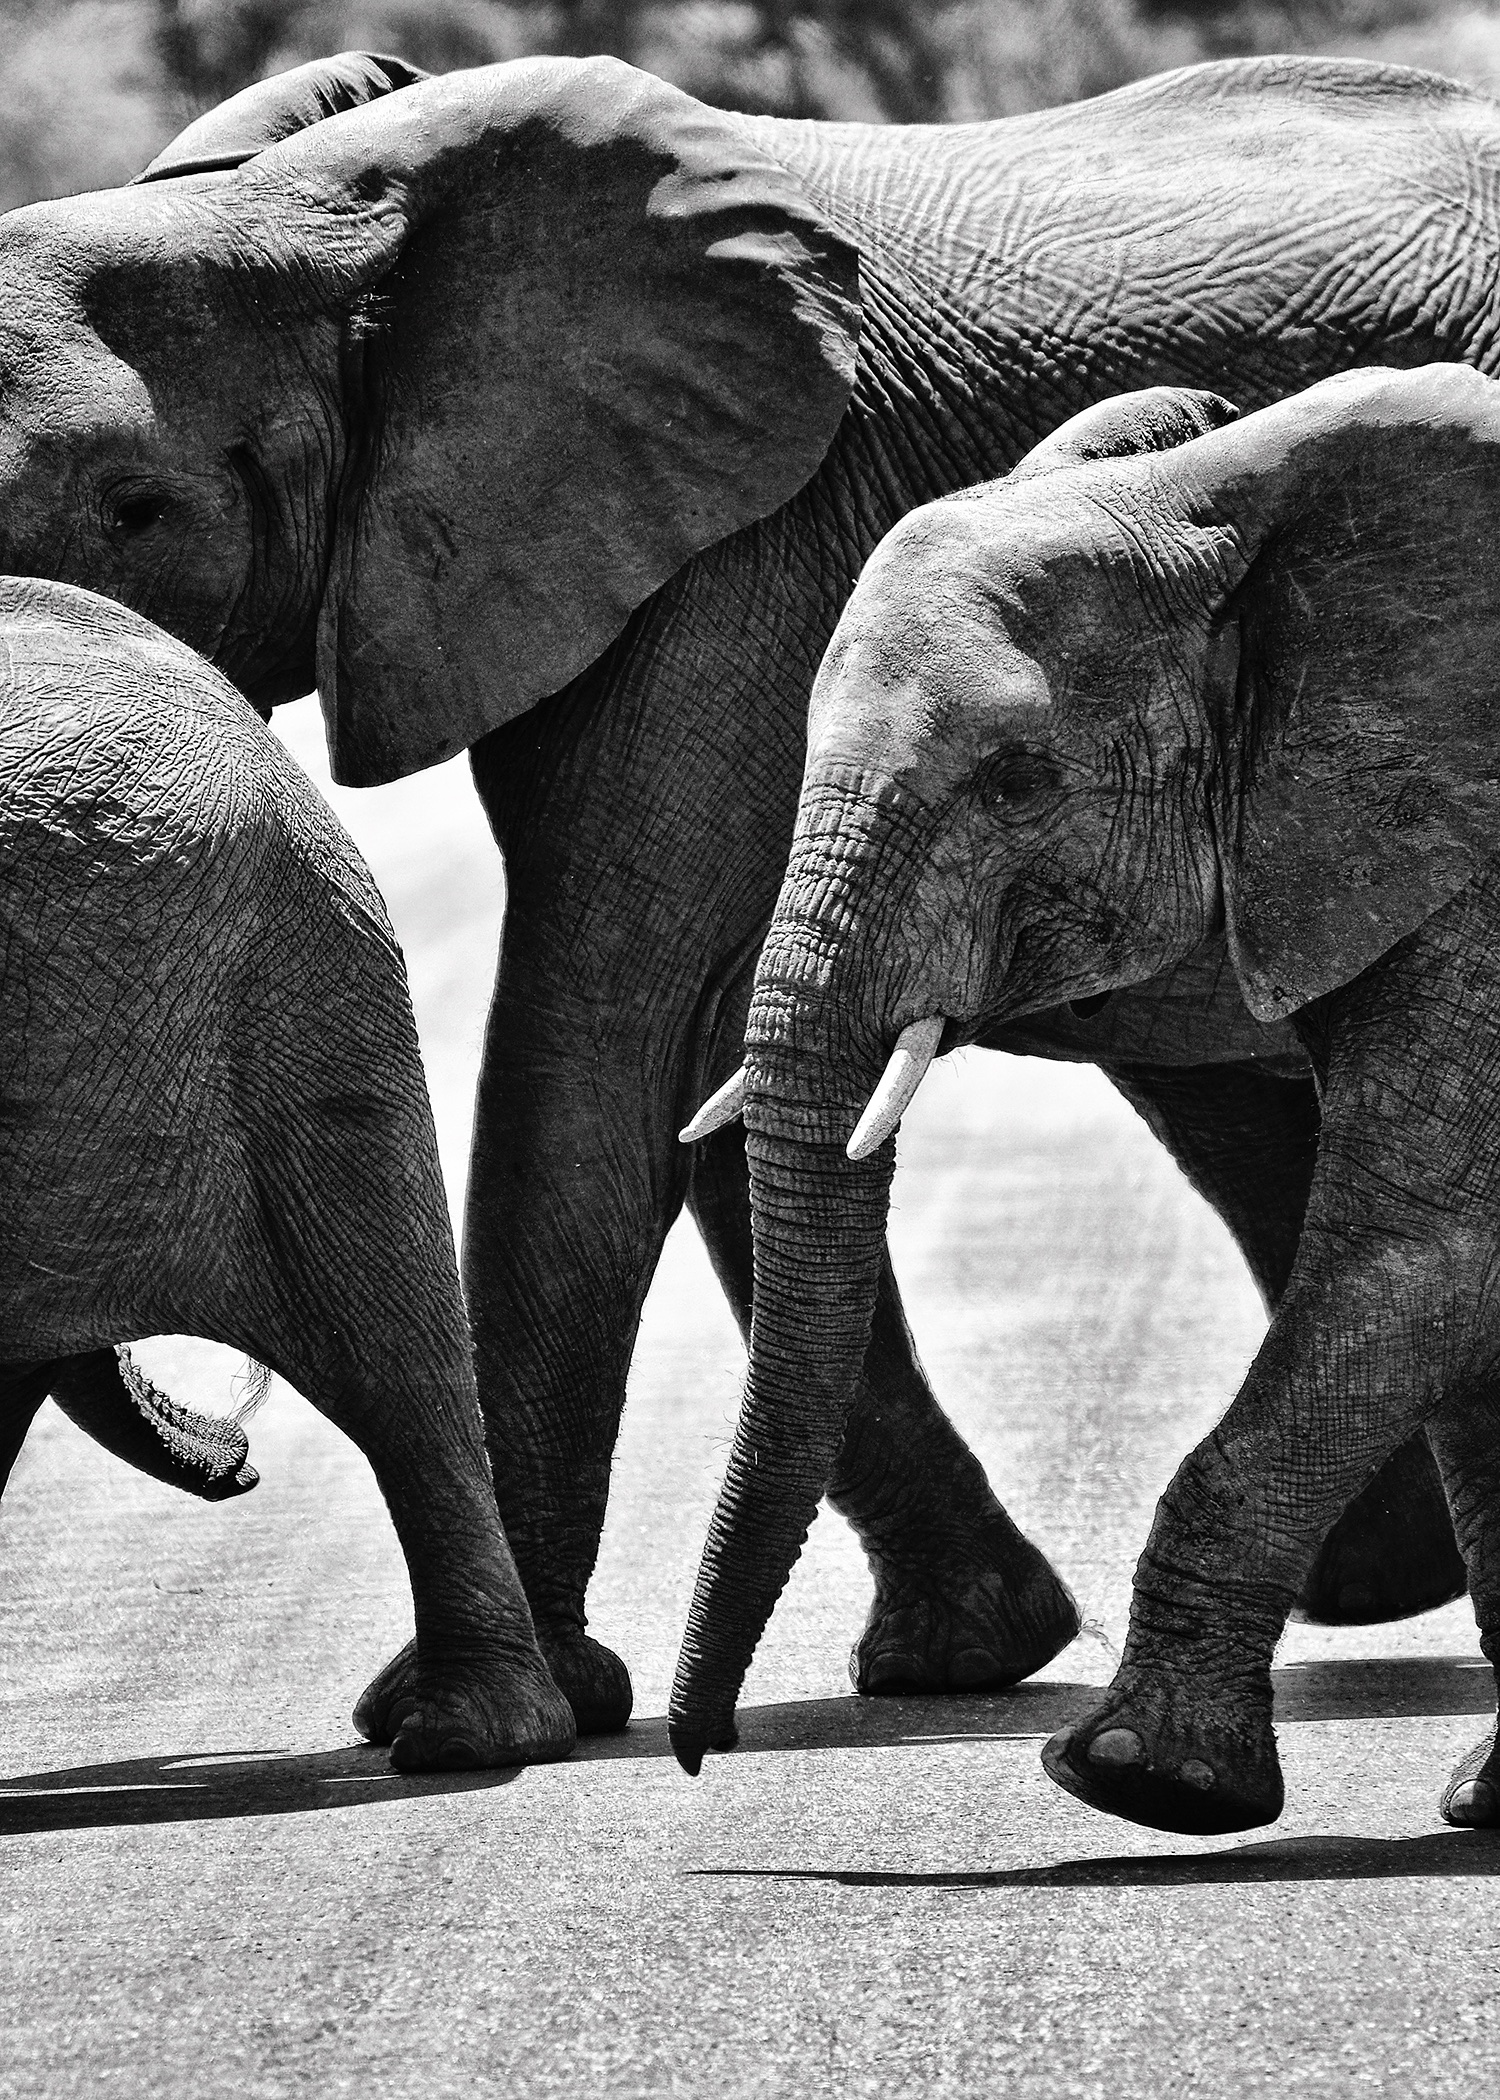 Elephant Herd in South Africa